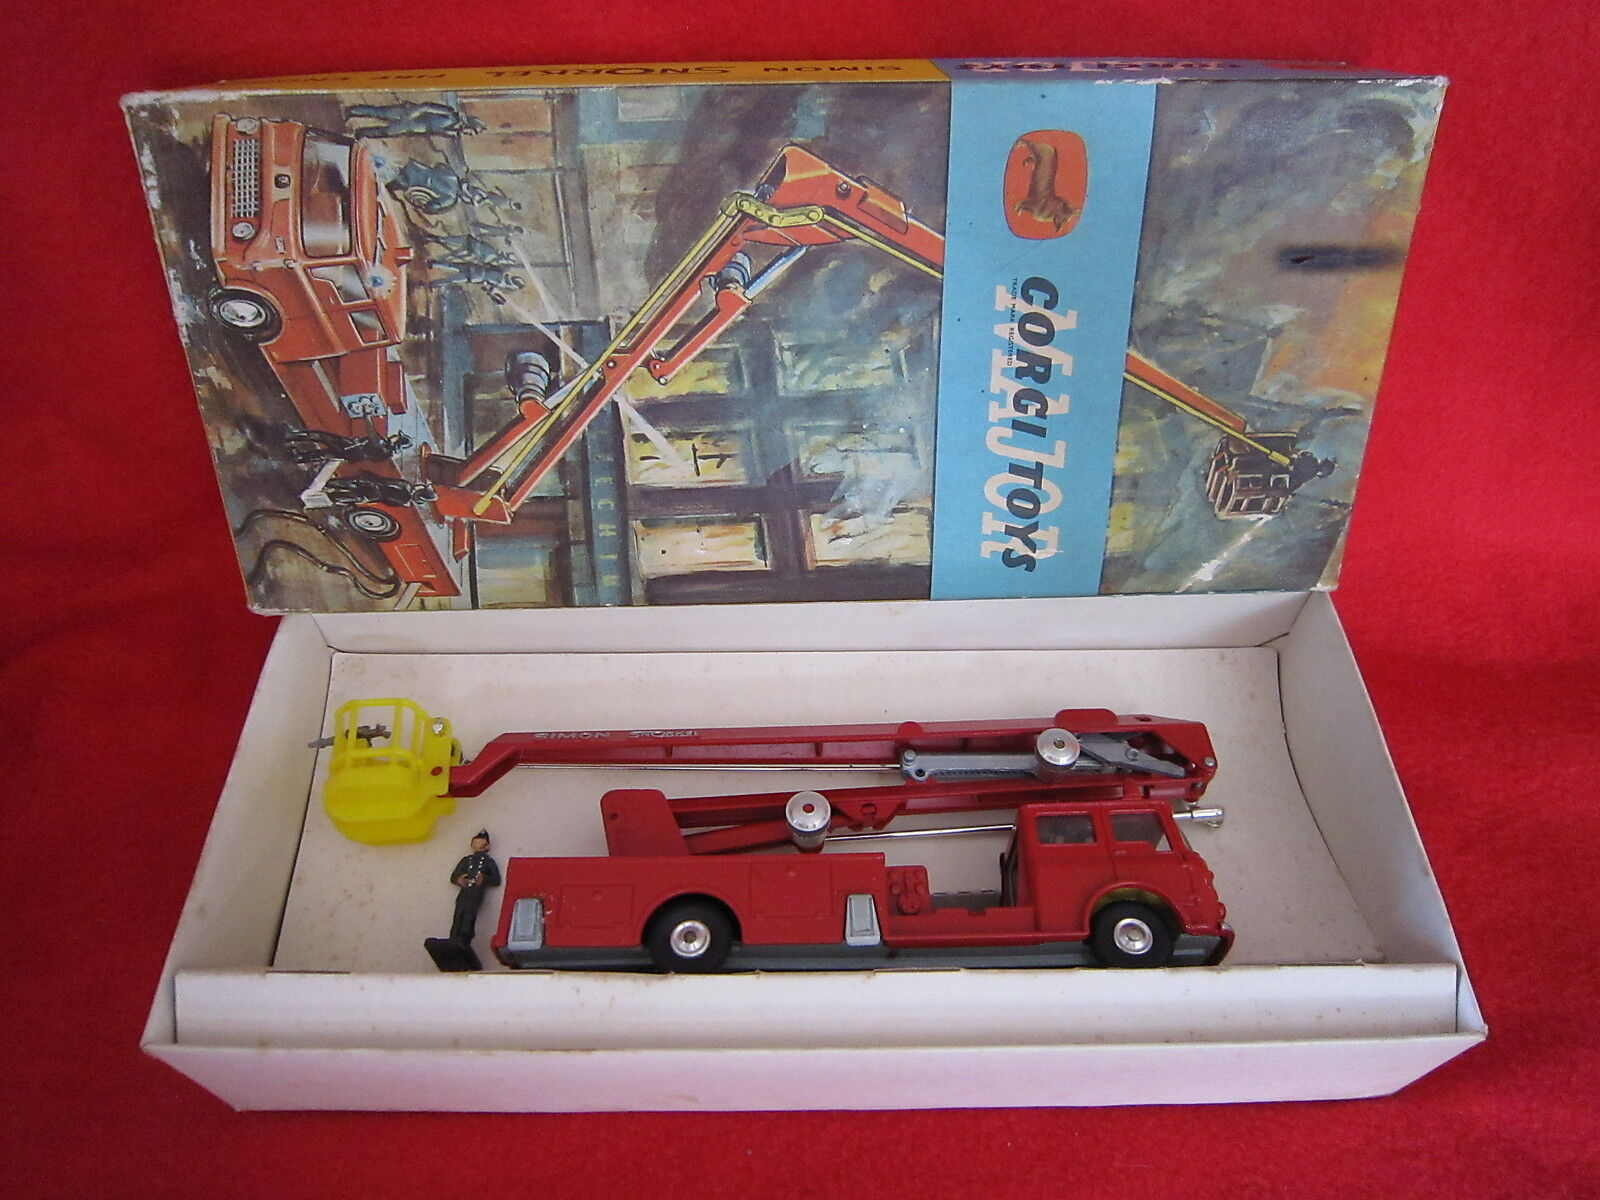 AB532 CORGI TOYS MAJOR GB SIMON SNORKEL FIRE ENGINE Ref 1127 TRES BON ETAT BOITE